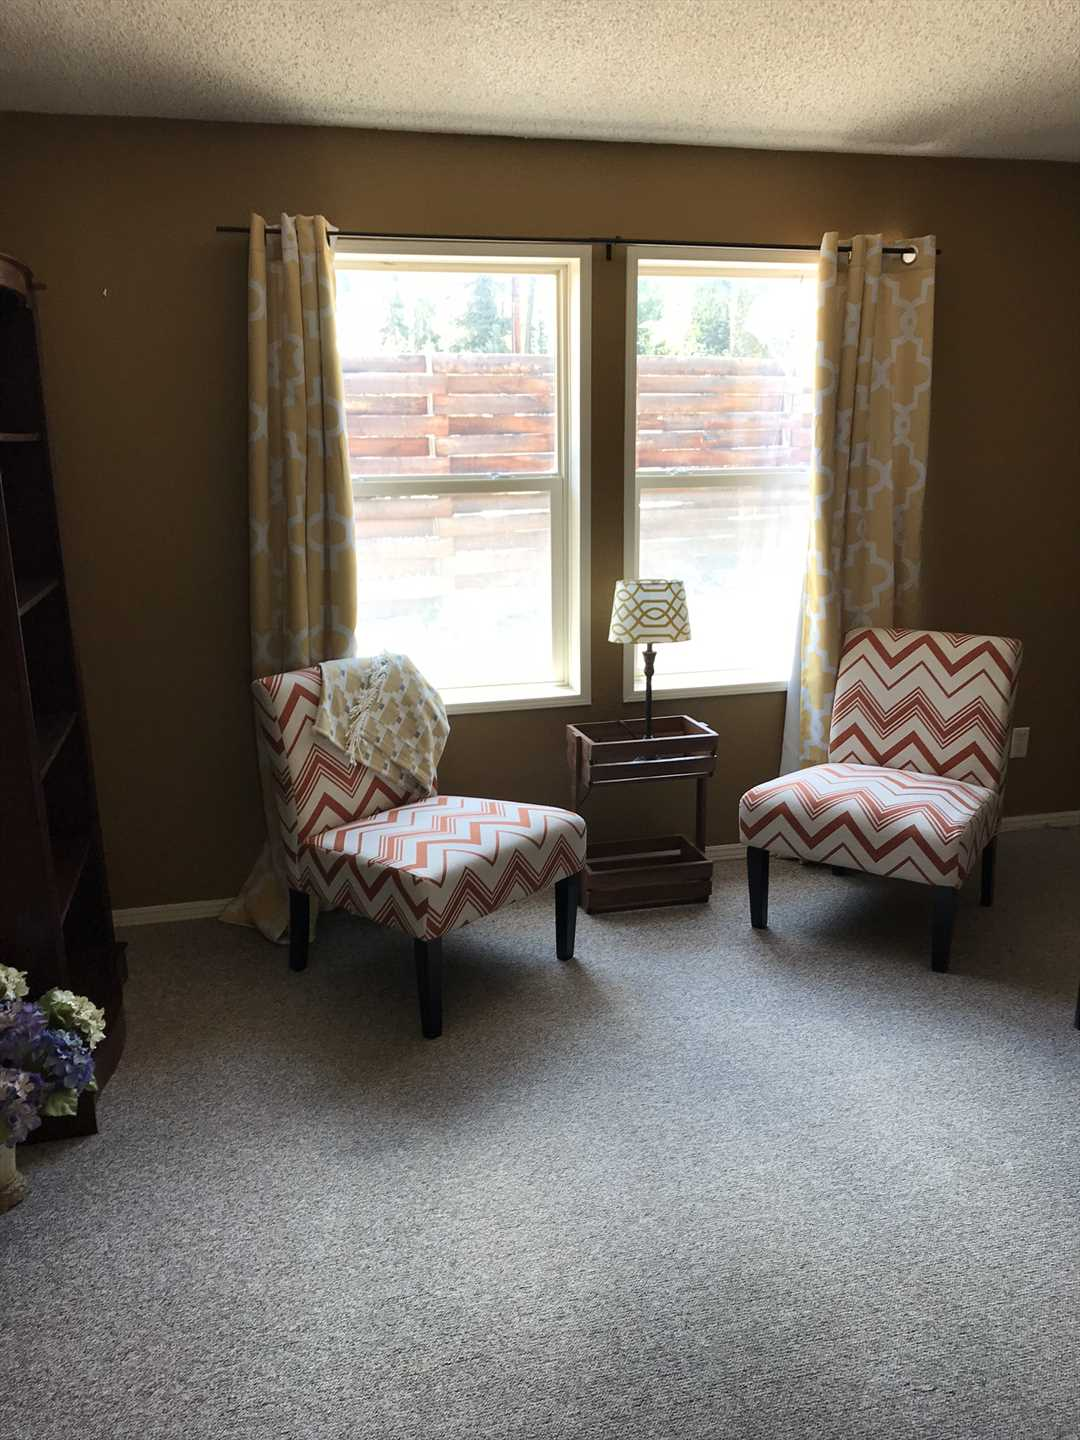 Chairs in Office Bedroom